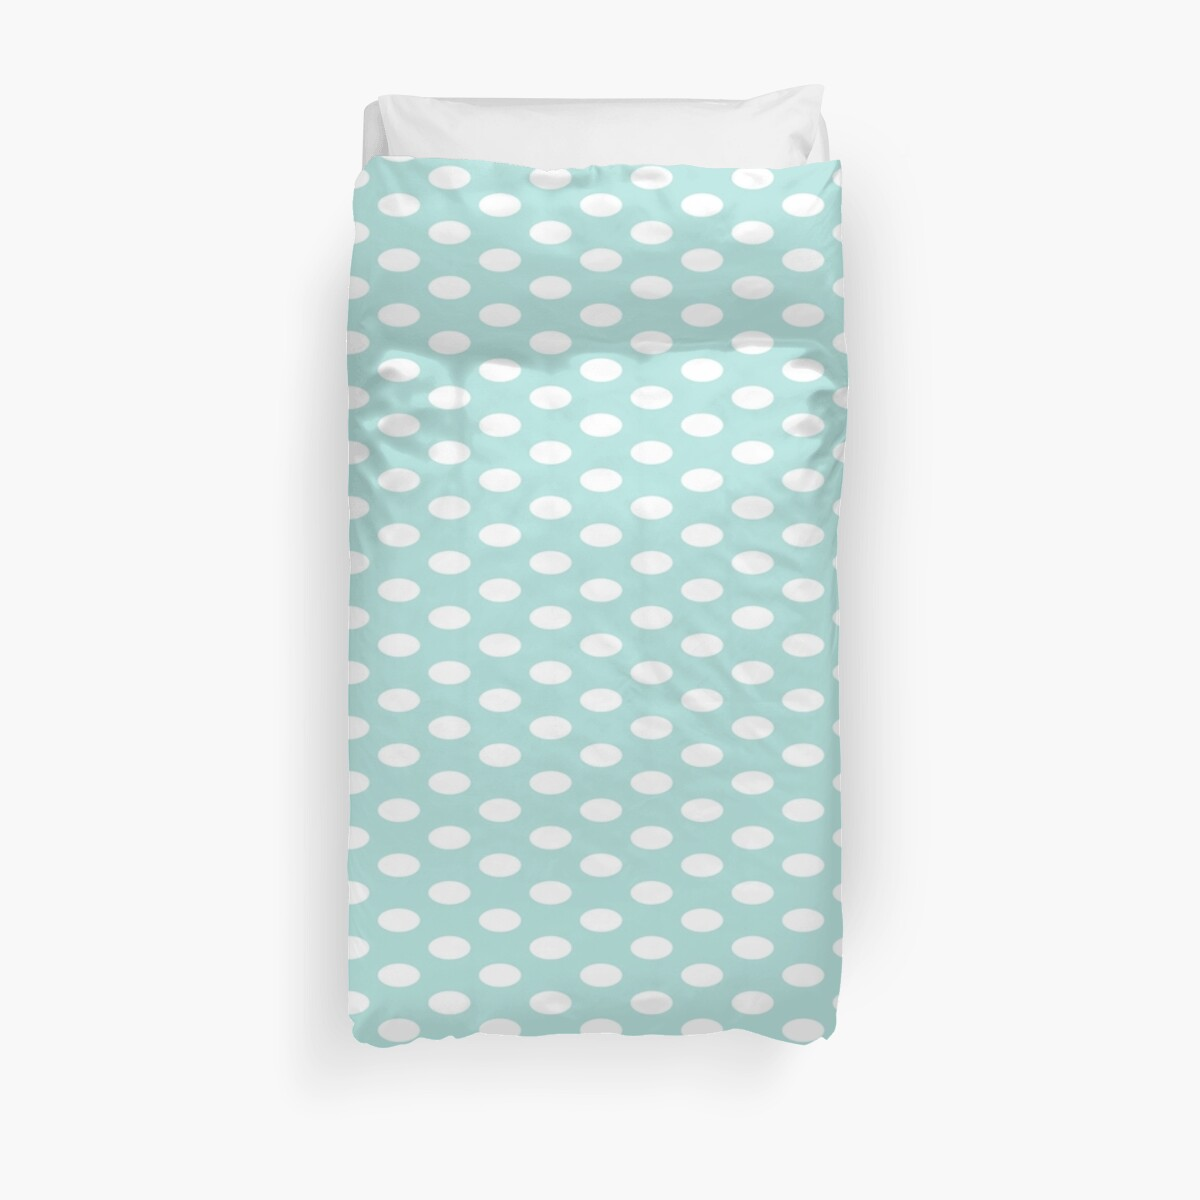 dotted by netza